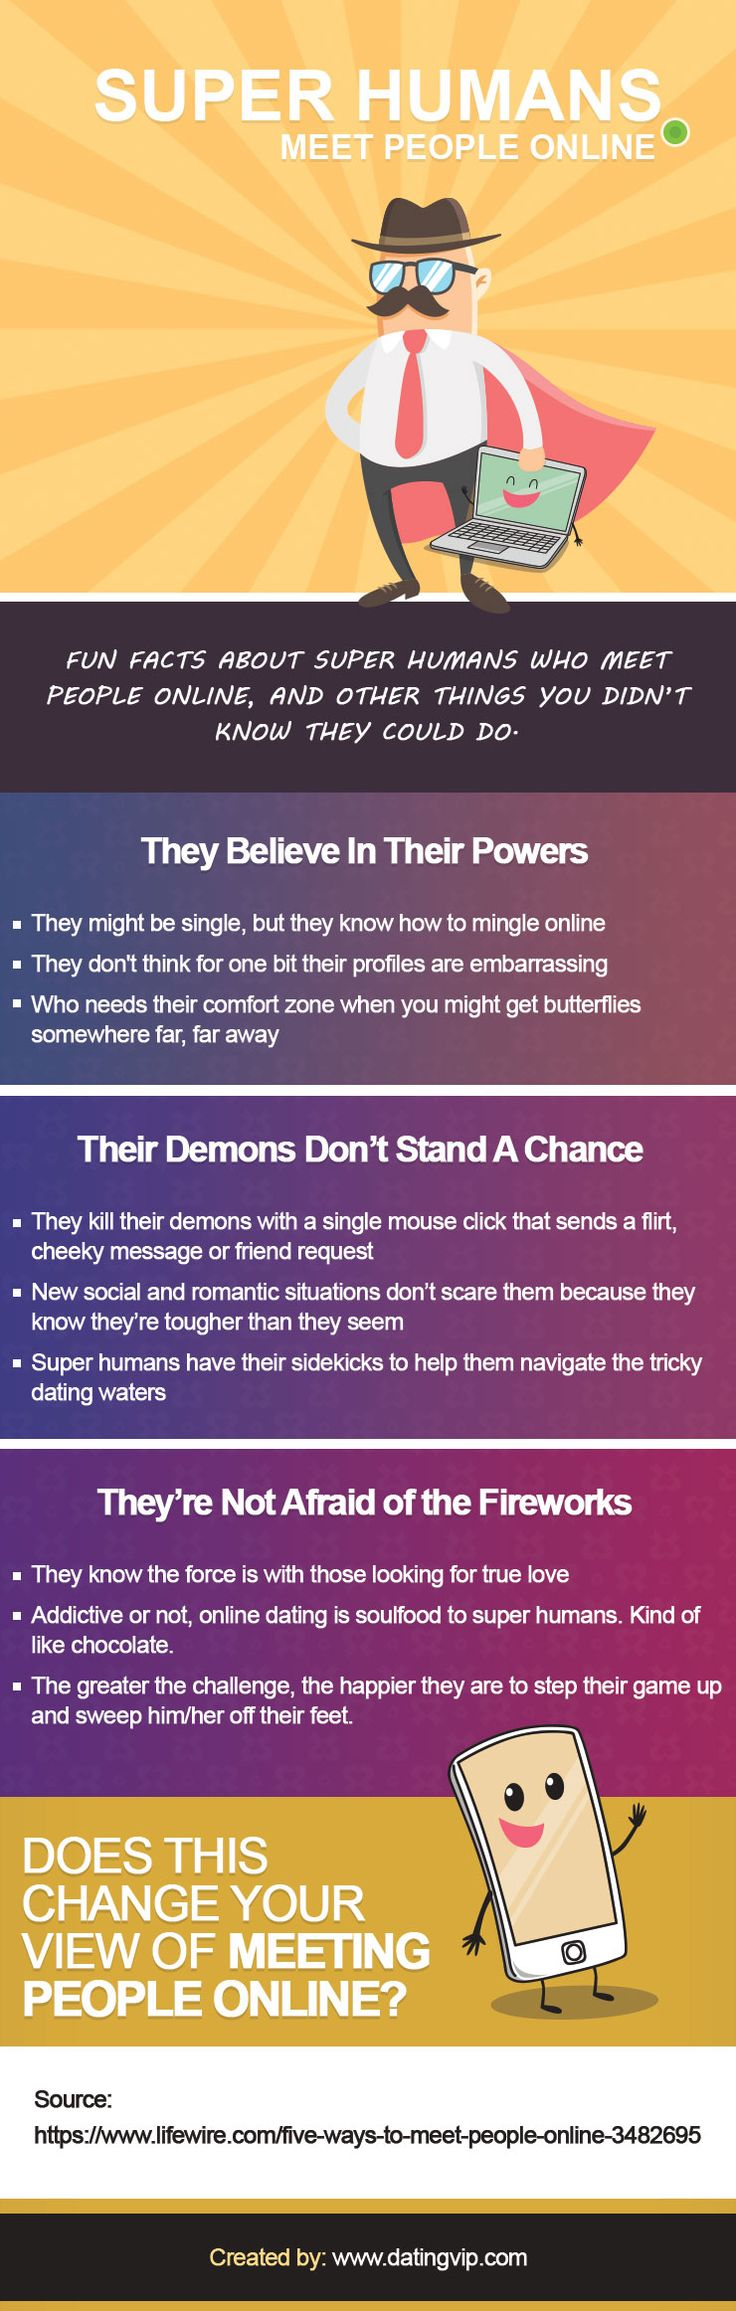 Fun facts about super humans who meet people online, and other things you didn't know they could do.